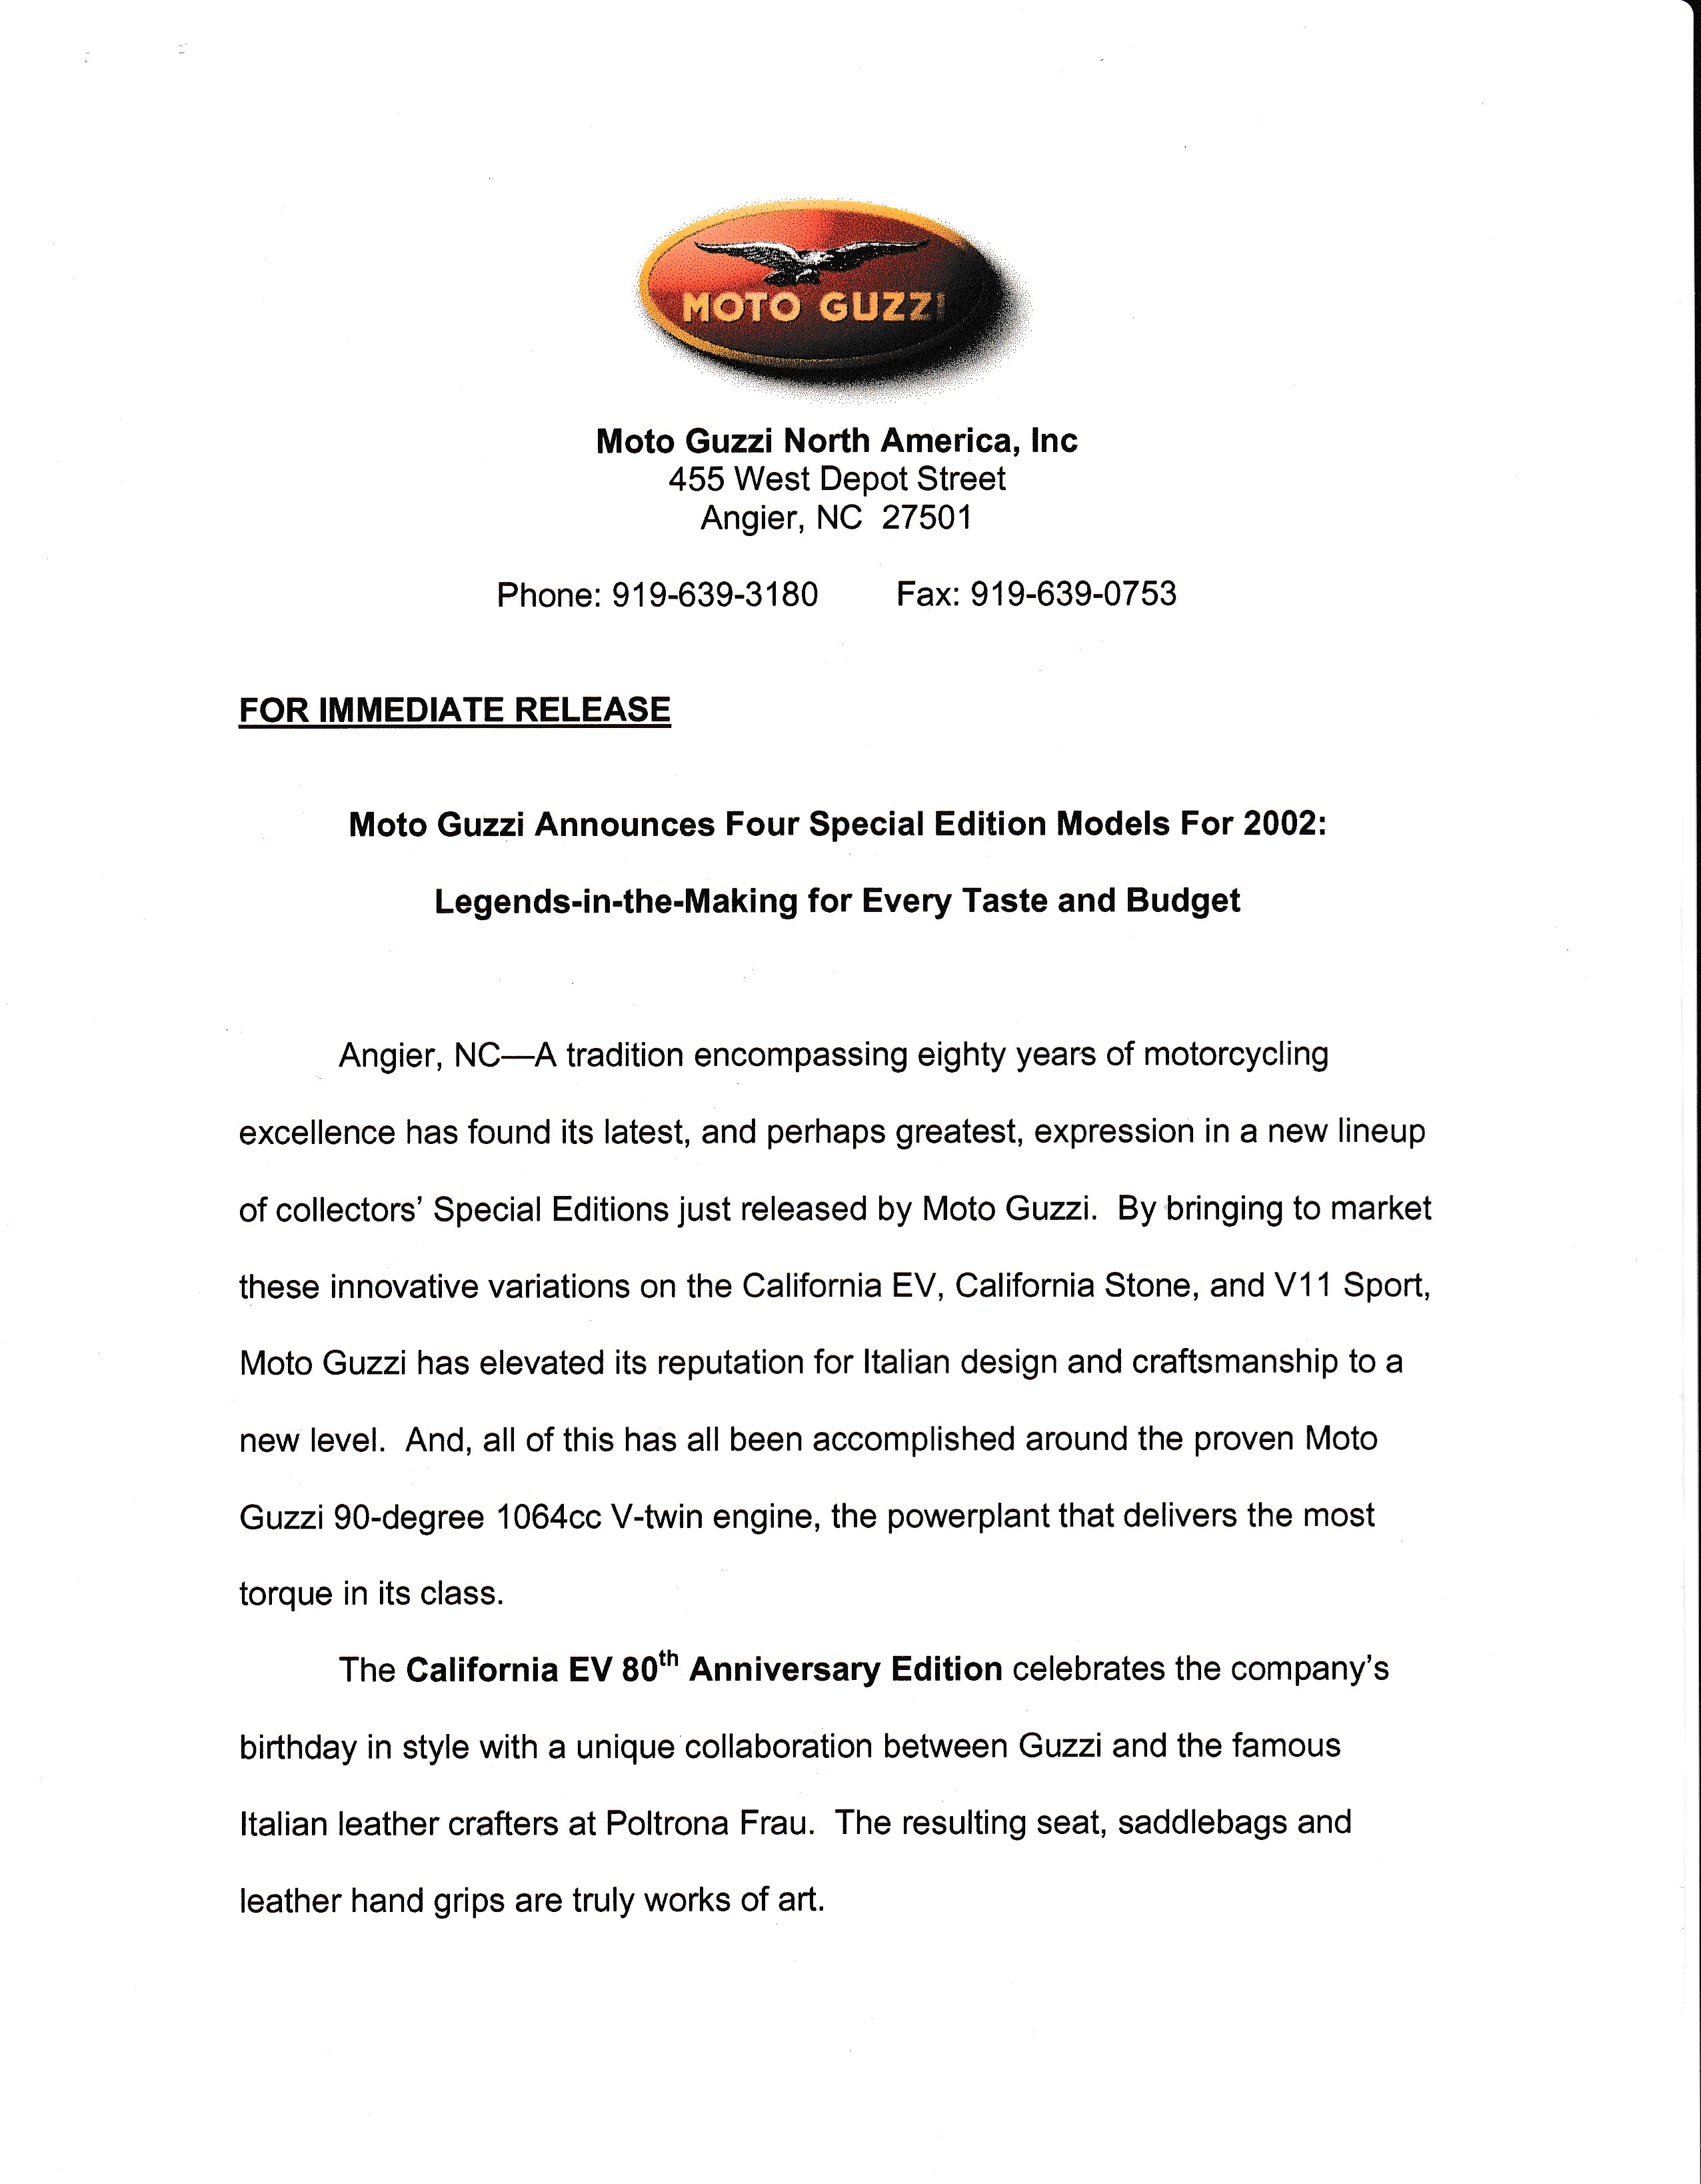 Press release - Four special edition models for 2002